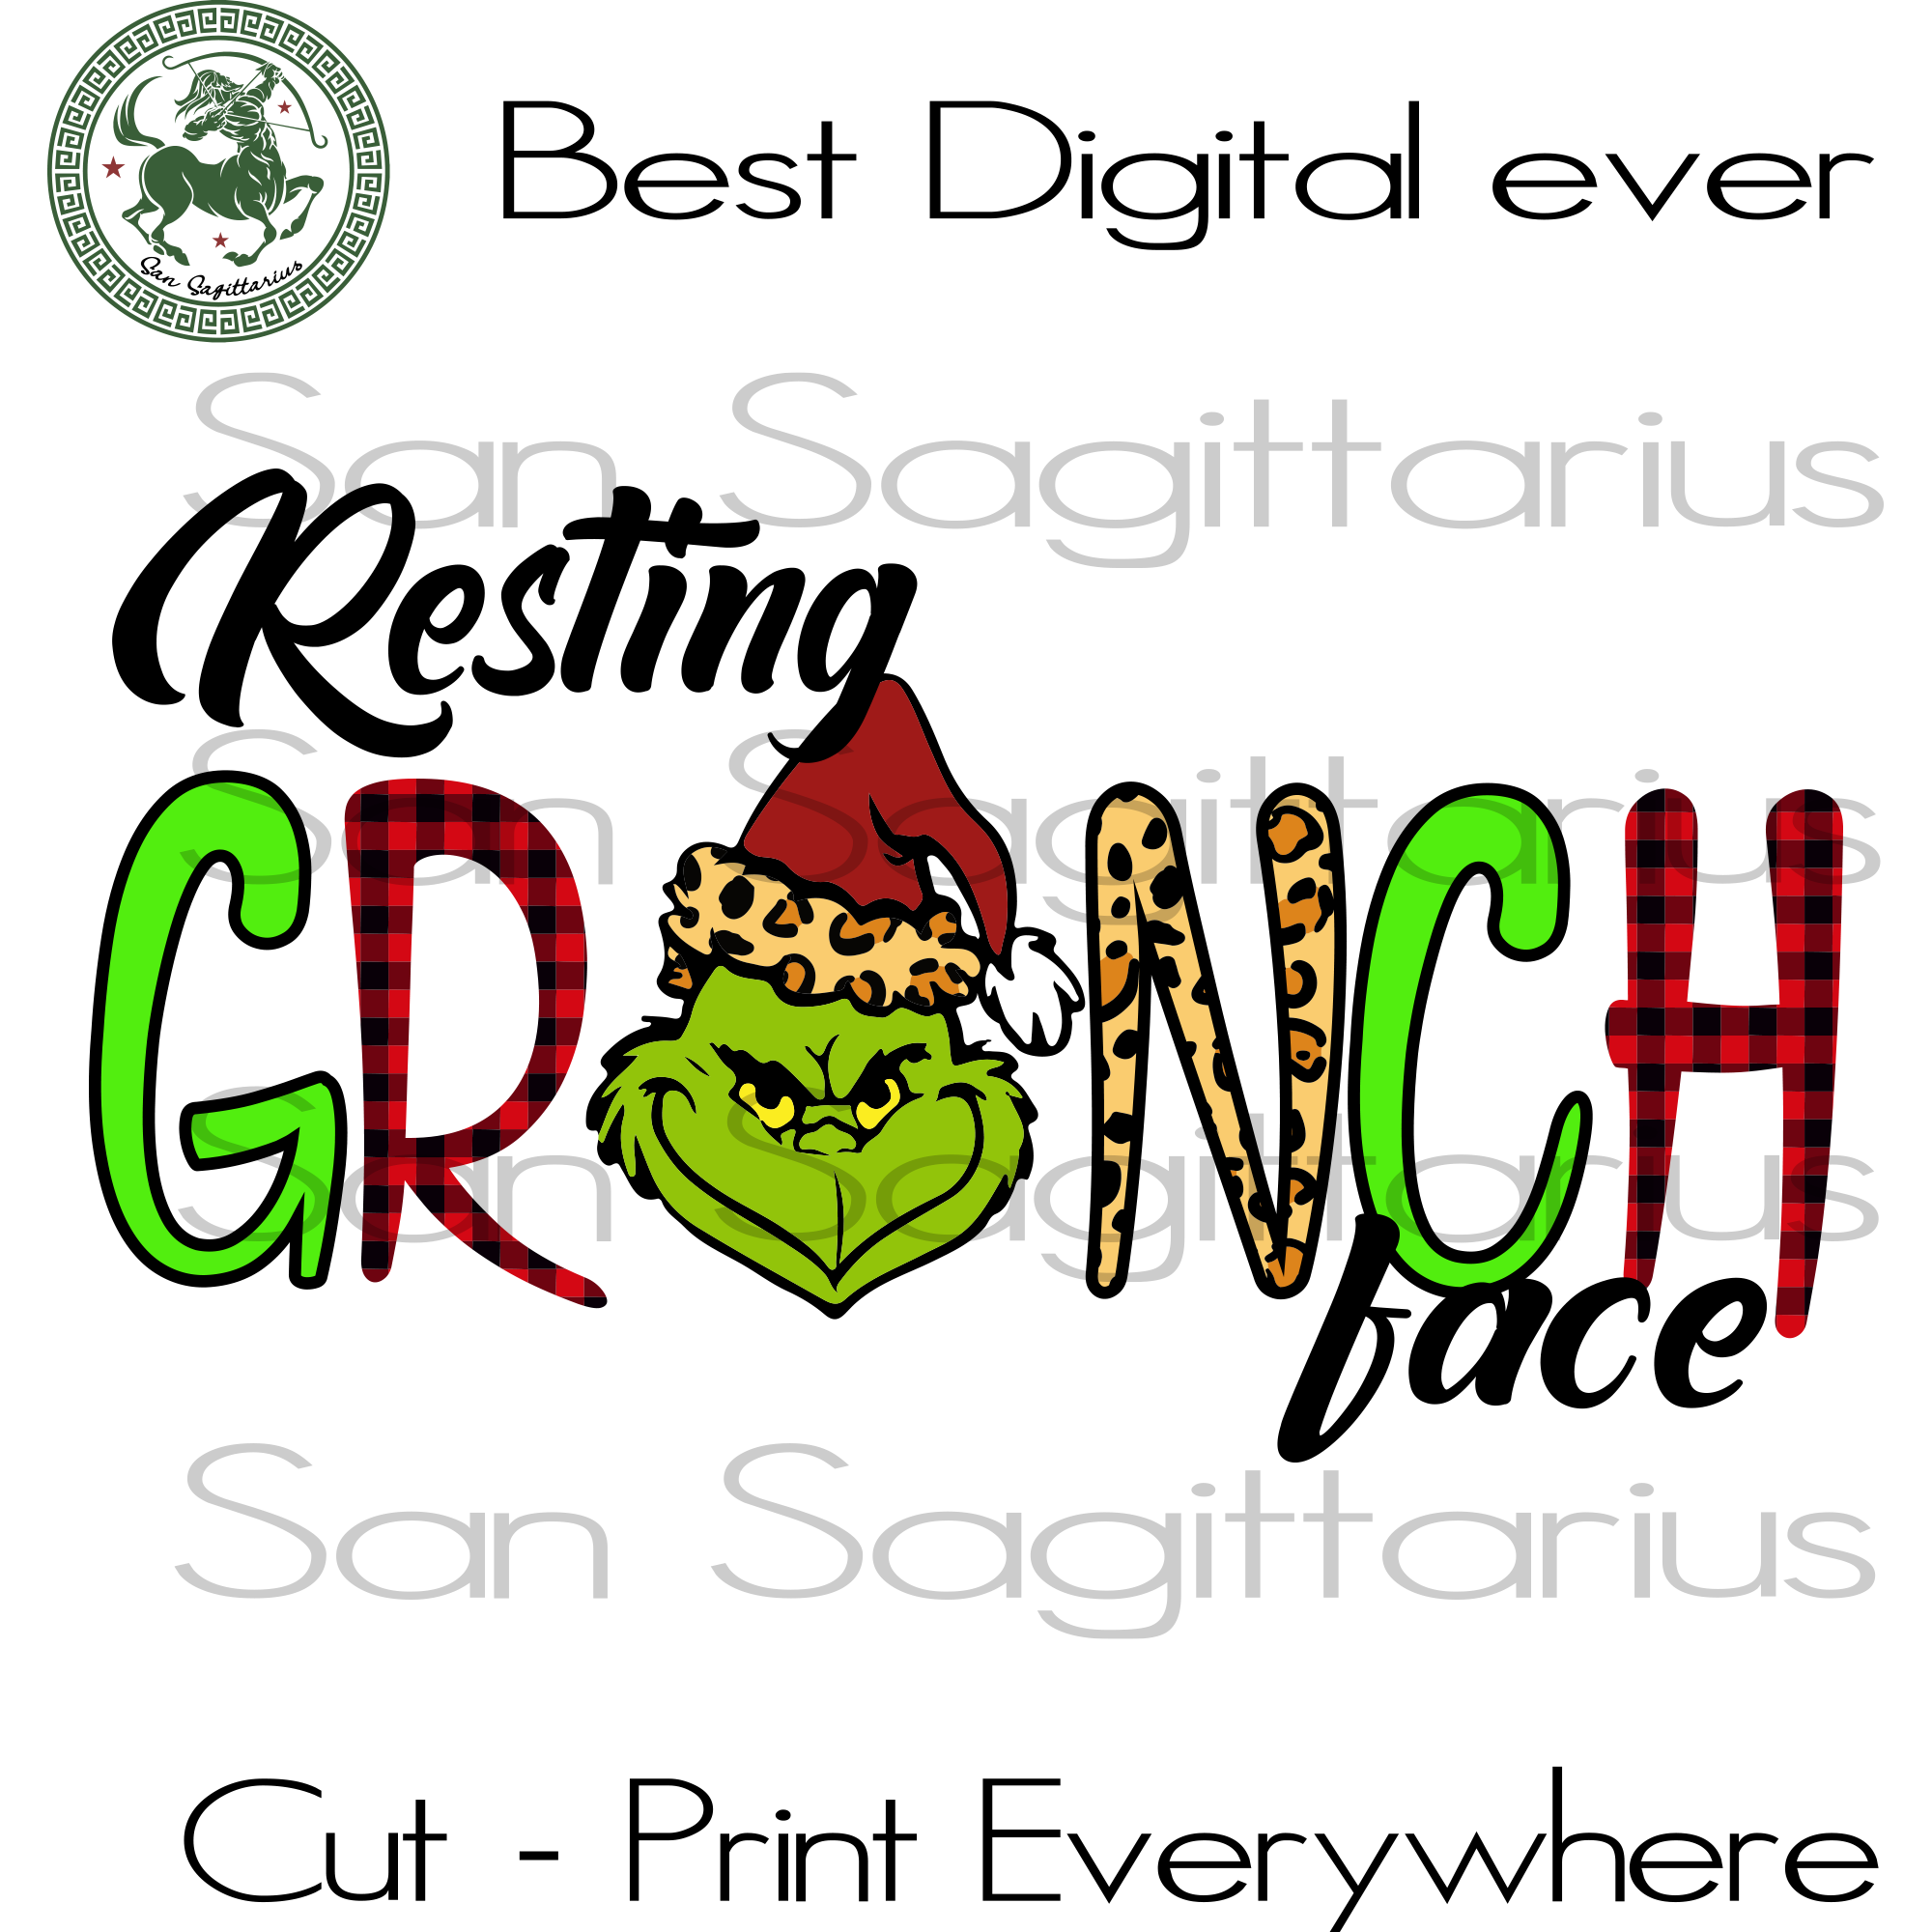 Resting grinch face,  The Grinch Svg, Christmas Grinch Svg, The Grinch, Grinch Svg, The Grinch Lover Svg, Grinch Cut File, Grinch Christmas, Grinch Lover Svg, Christmas Svg, Christmas Gift, C